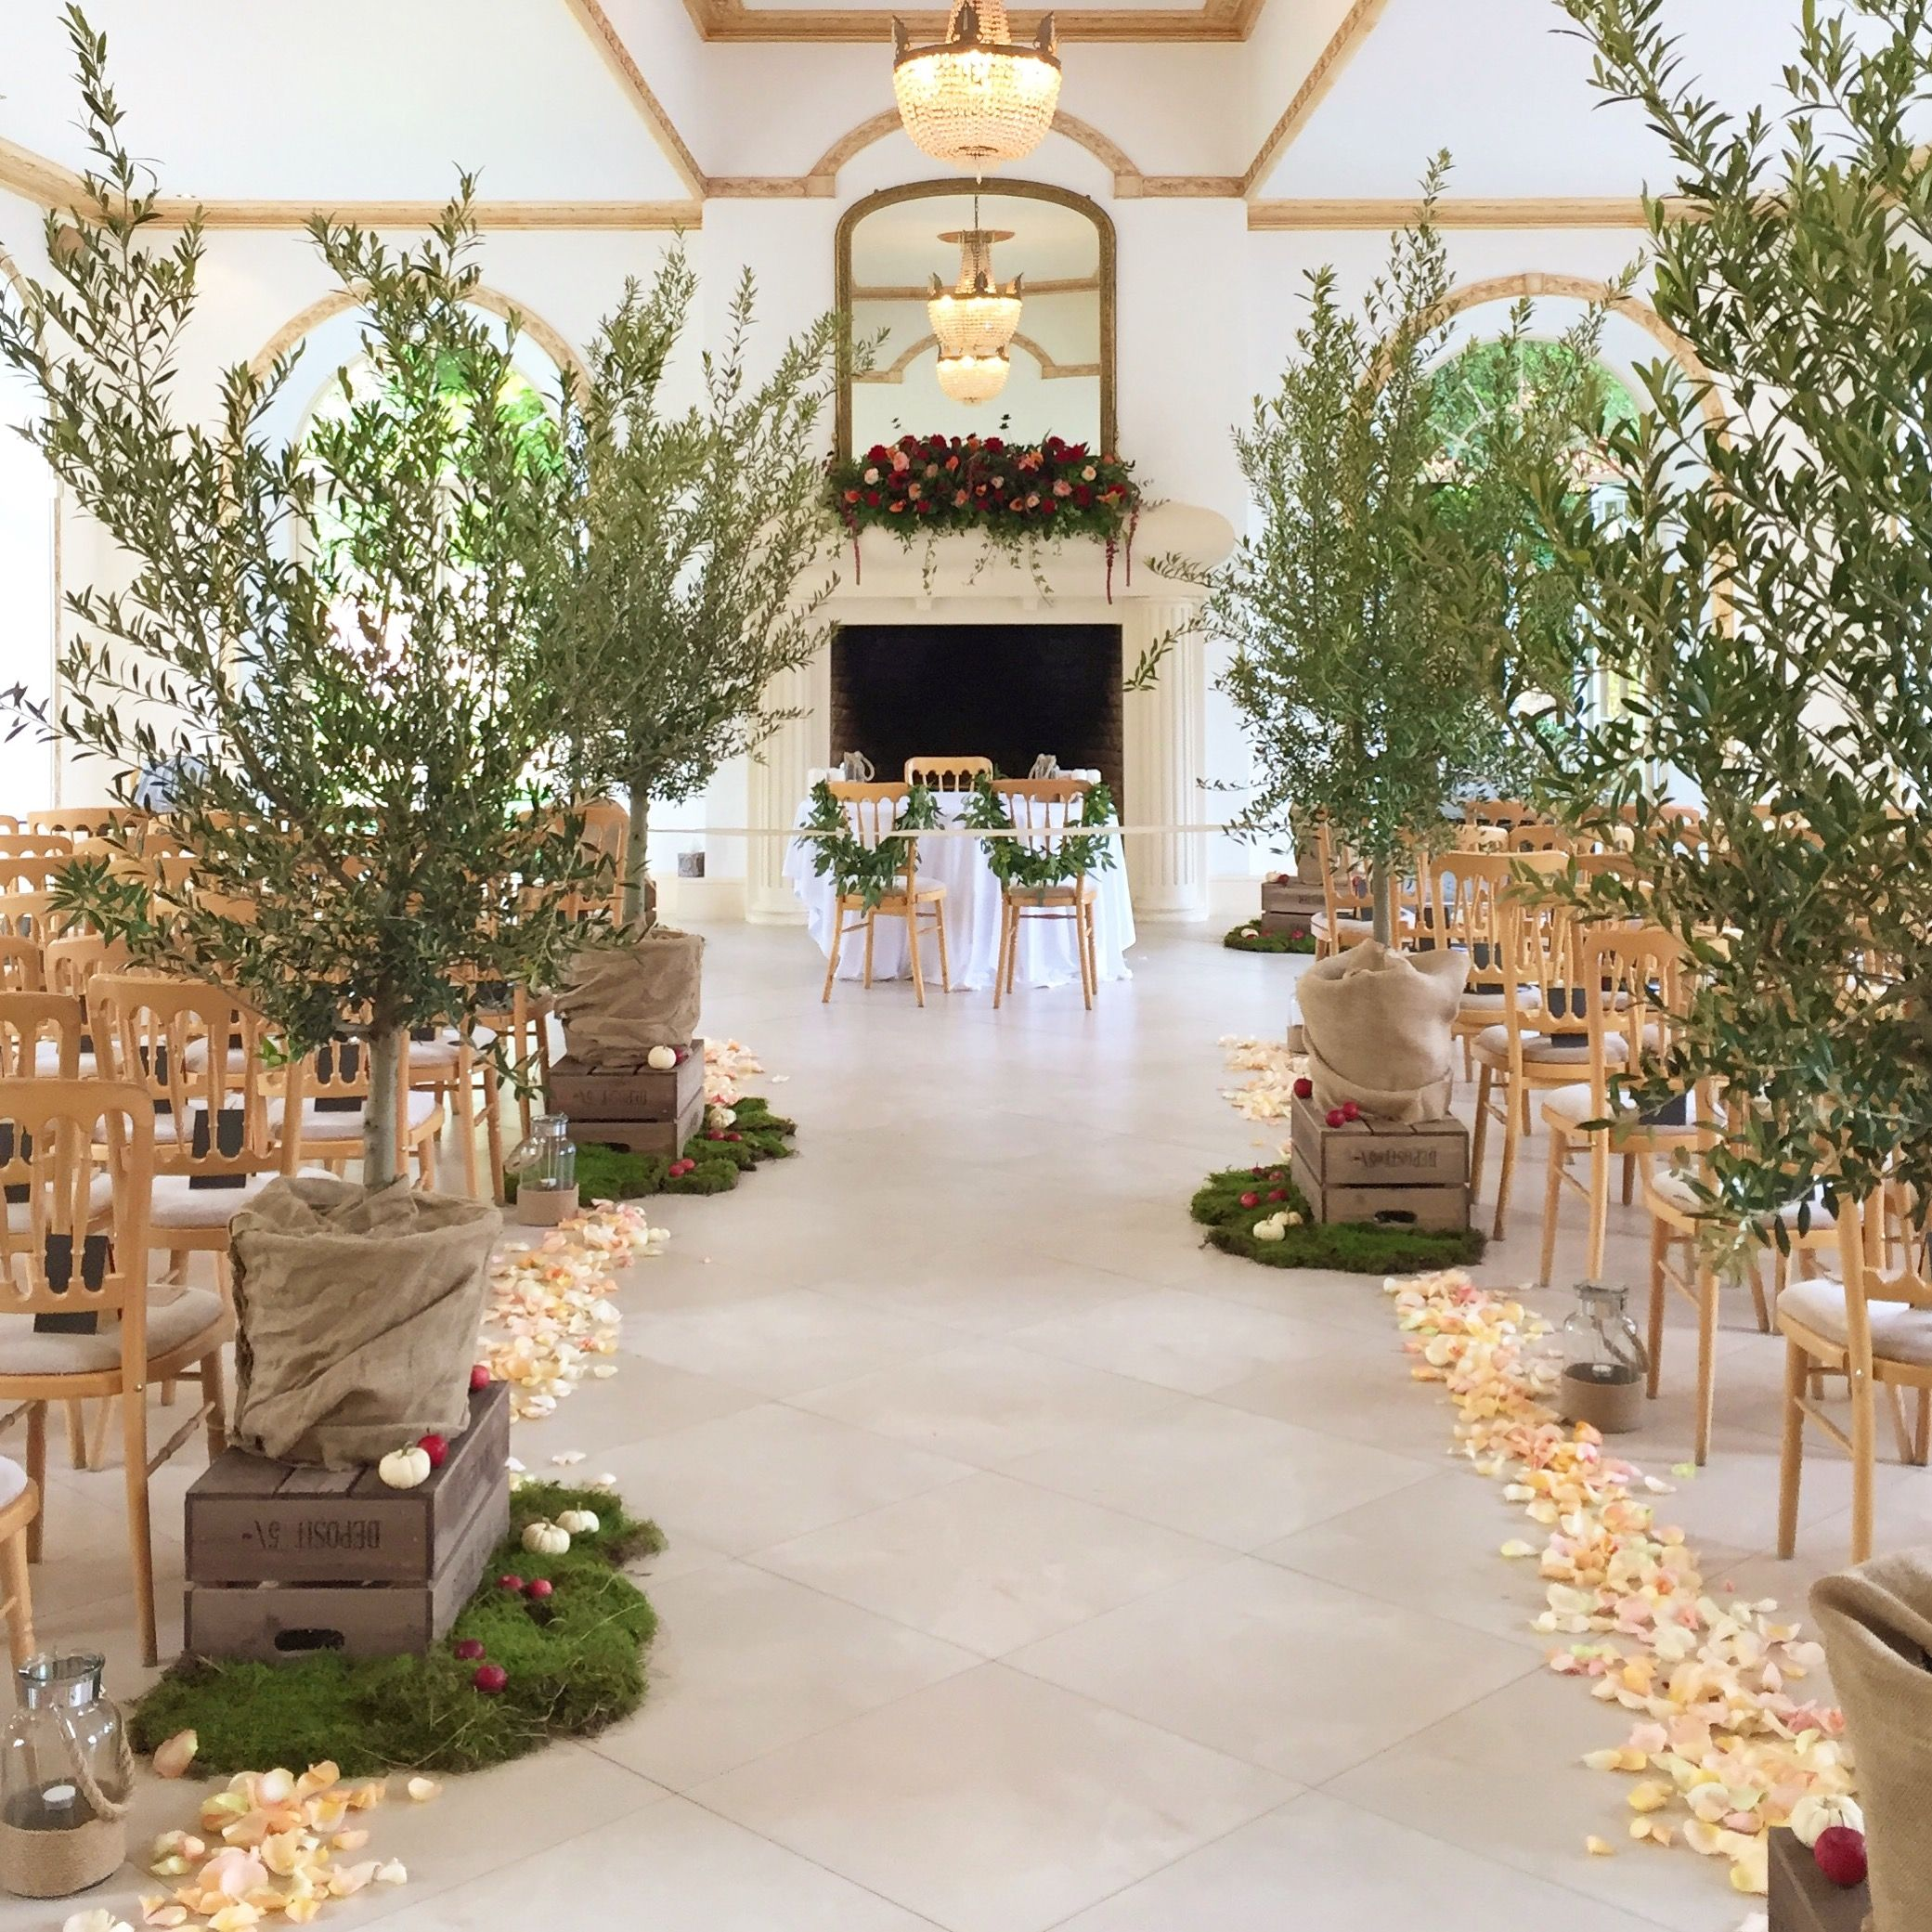 Stunning autumn wedding aisle the vine room northbrook park floral stunning autumn wedding aisle the vine room northbrook park floral design created by junglespirit Images